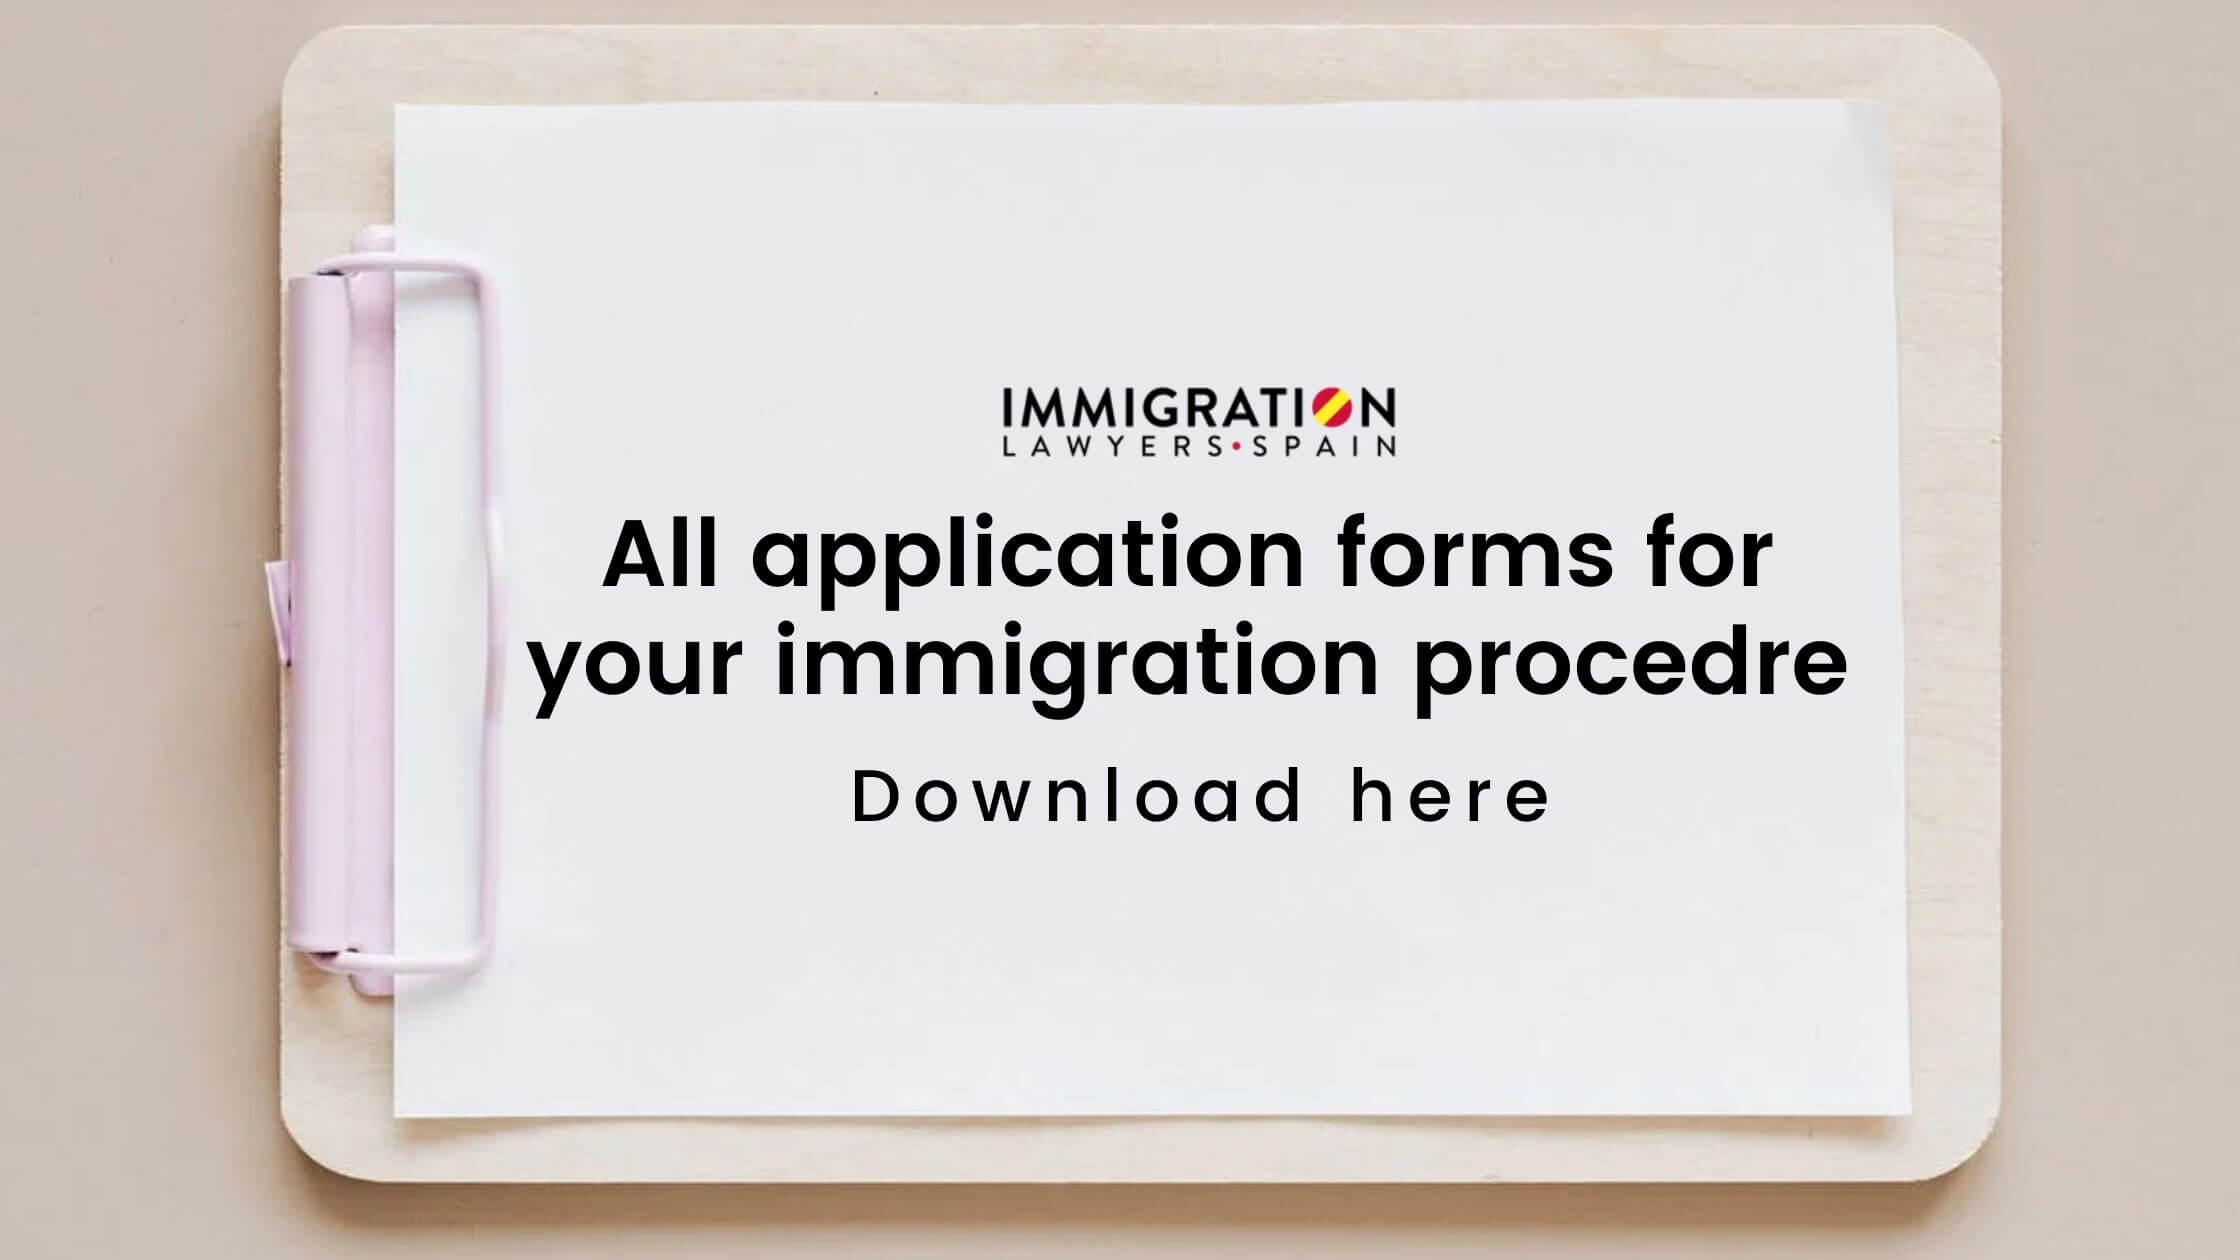 immigration application forms in Spain